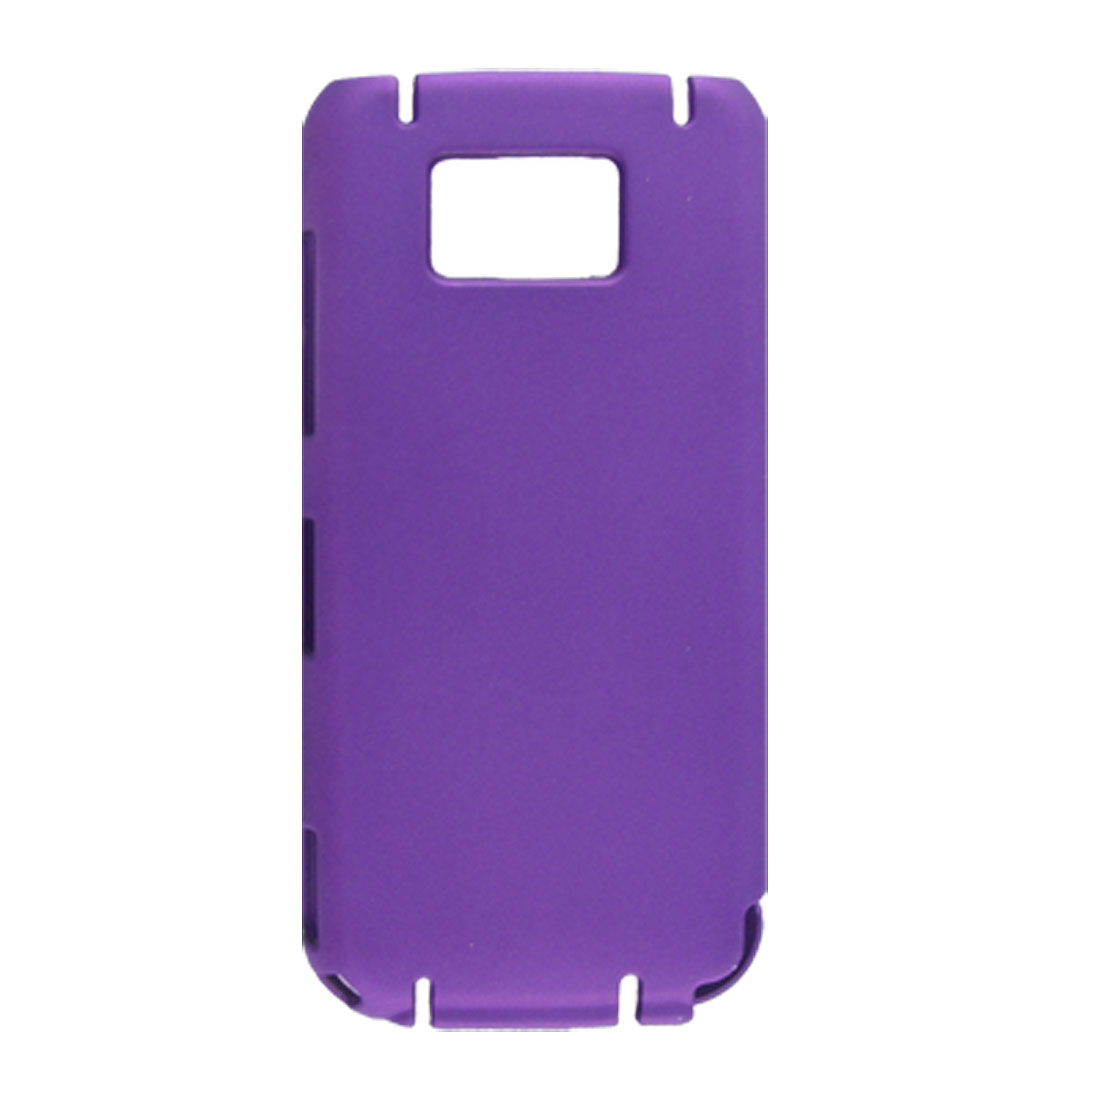 Purple Protective Rubberized Hard Plastic Cover for Nokia 5530